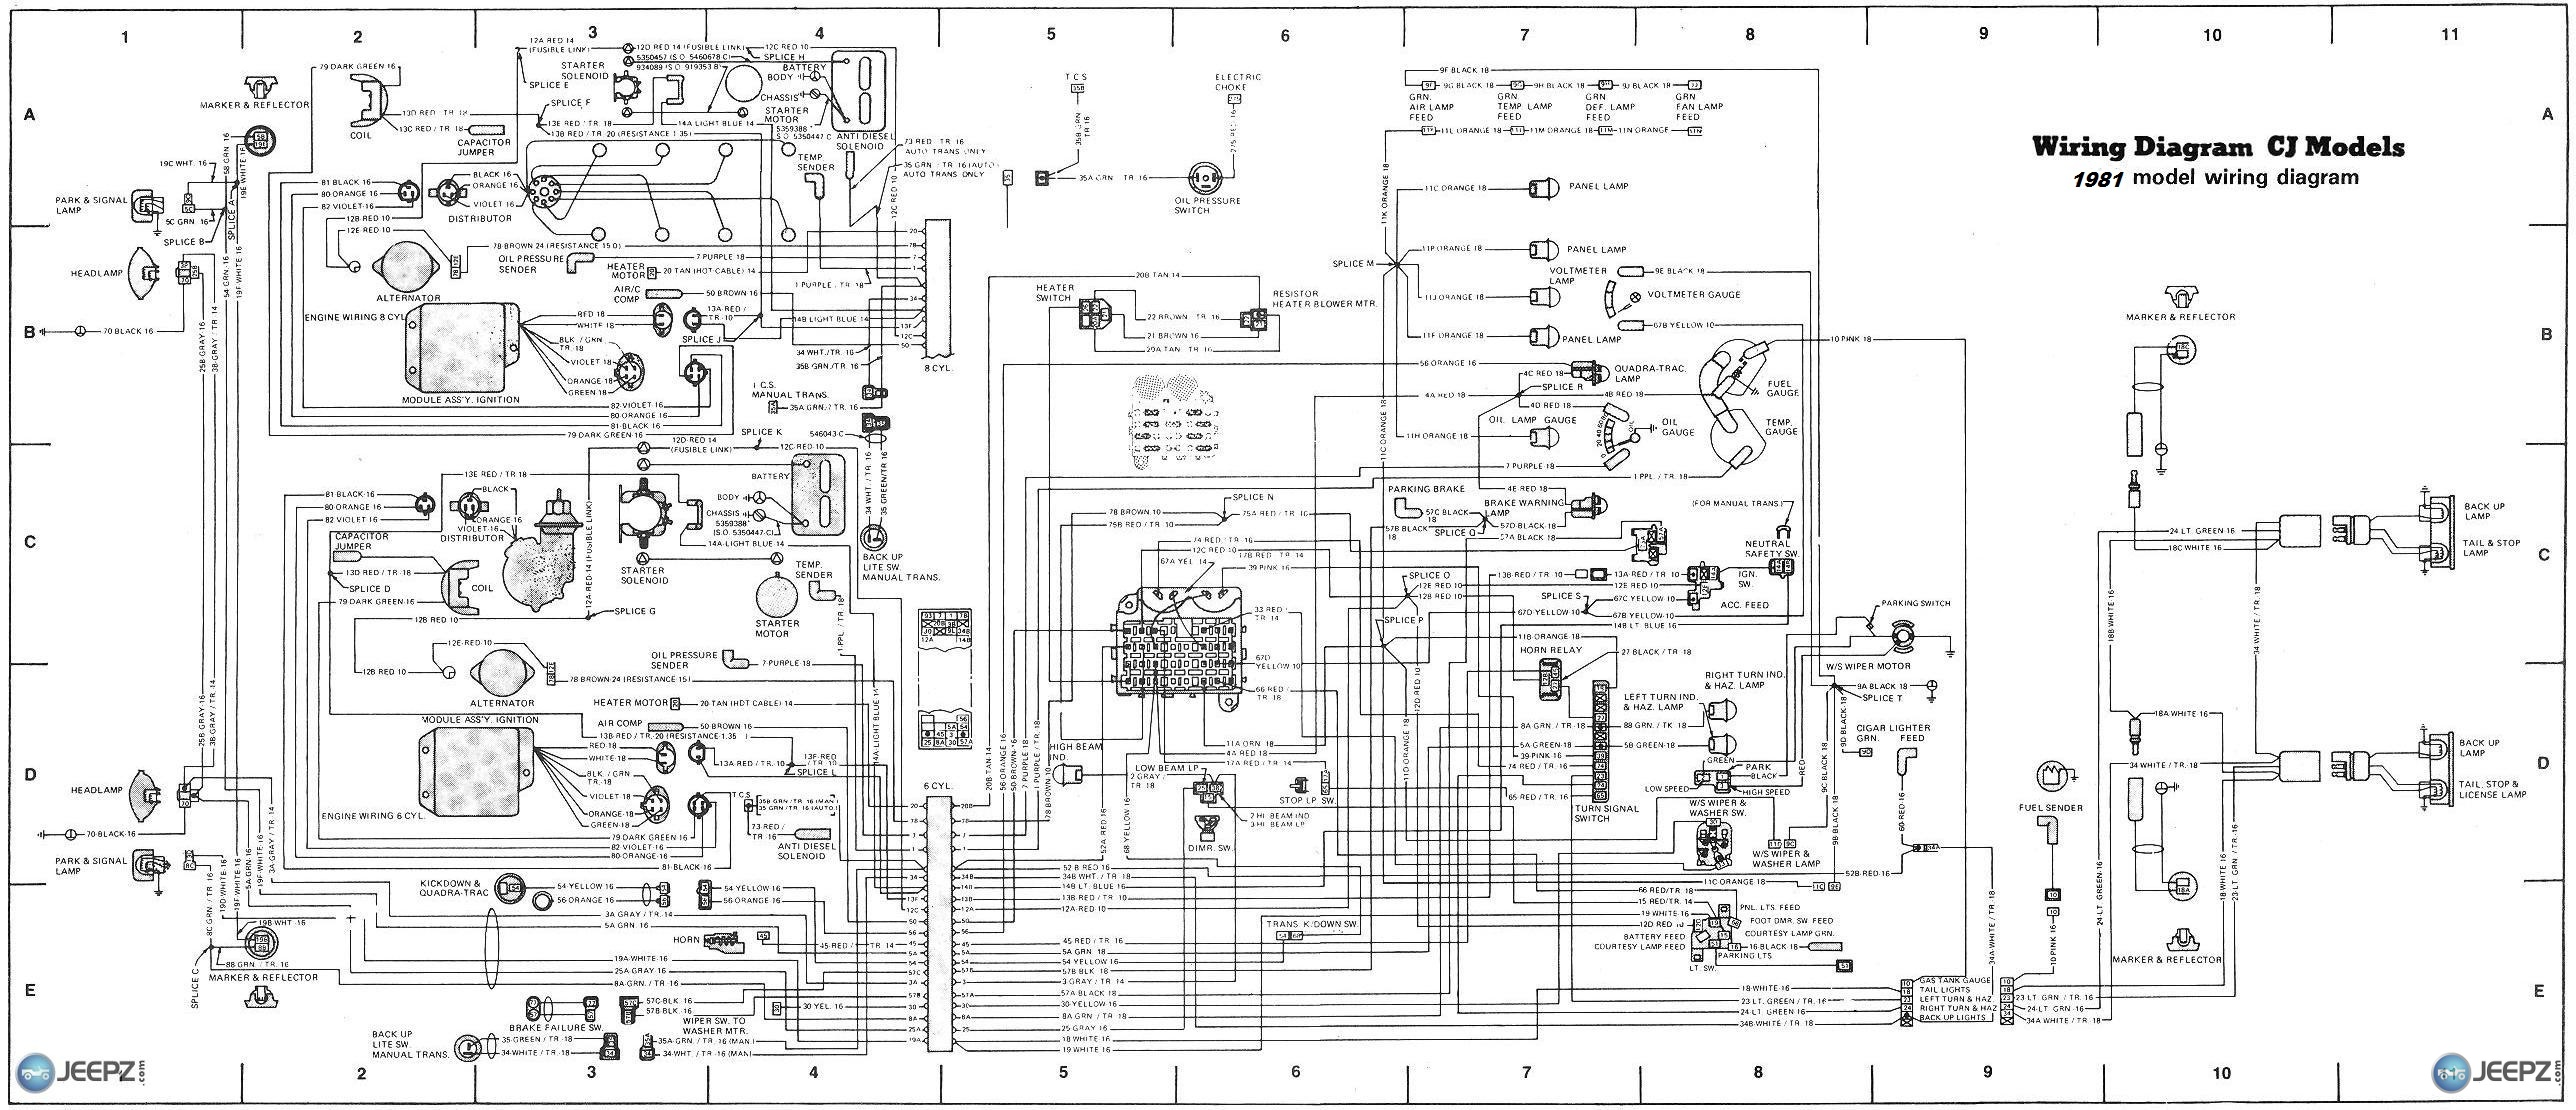 cj 7 wire diagram 1977 Jeep Cj5 Wiring Diagram 7993d1301845049 cj 7 wire diagram cj wiring diagram 1981